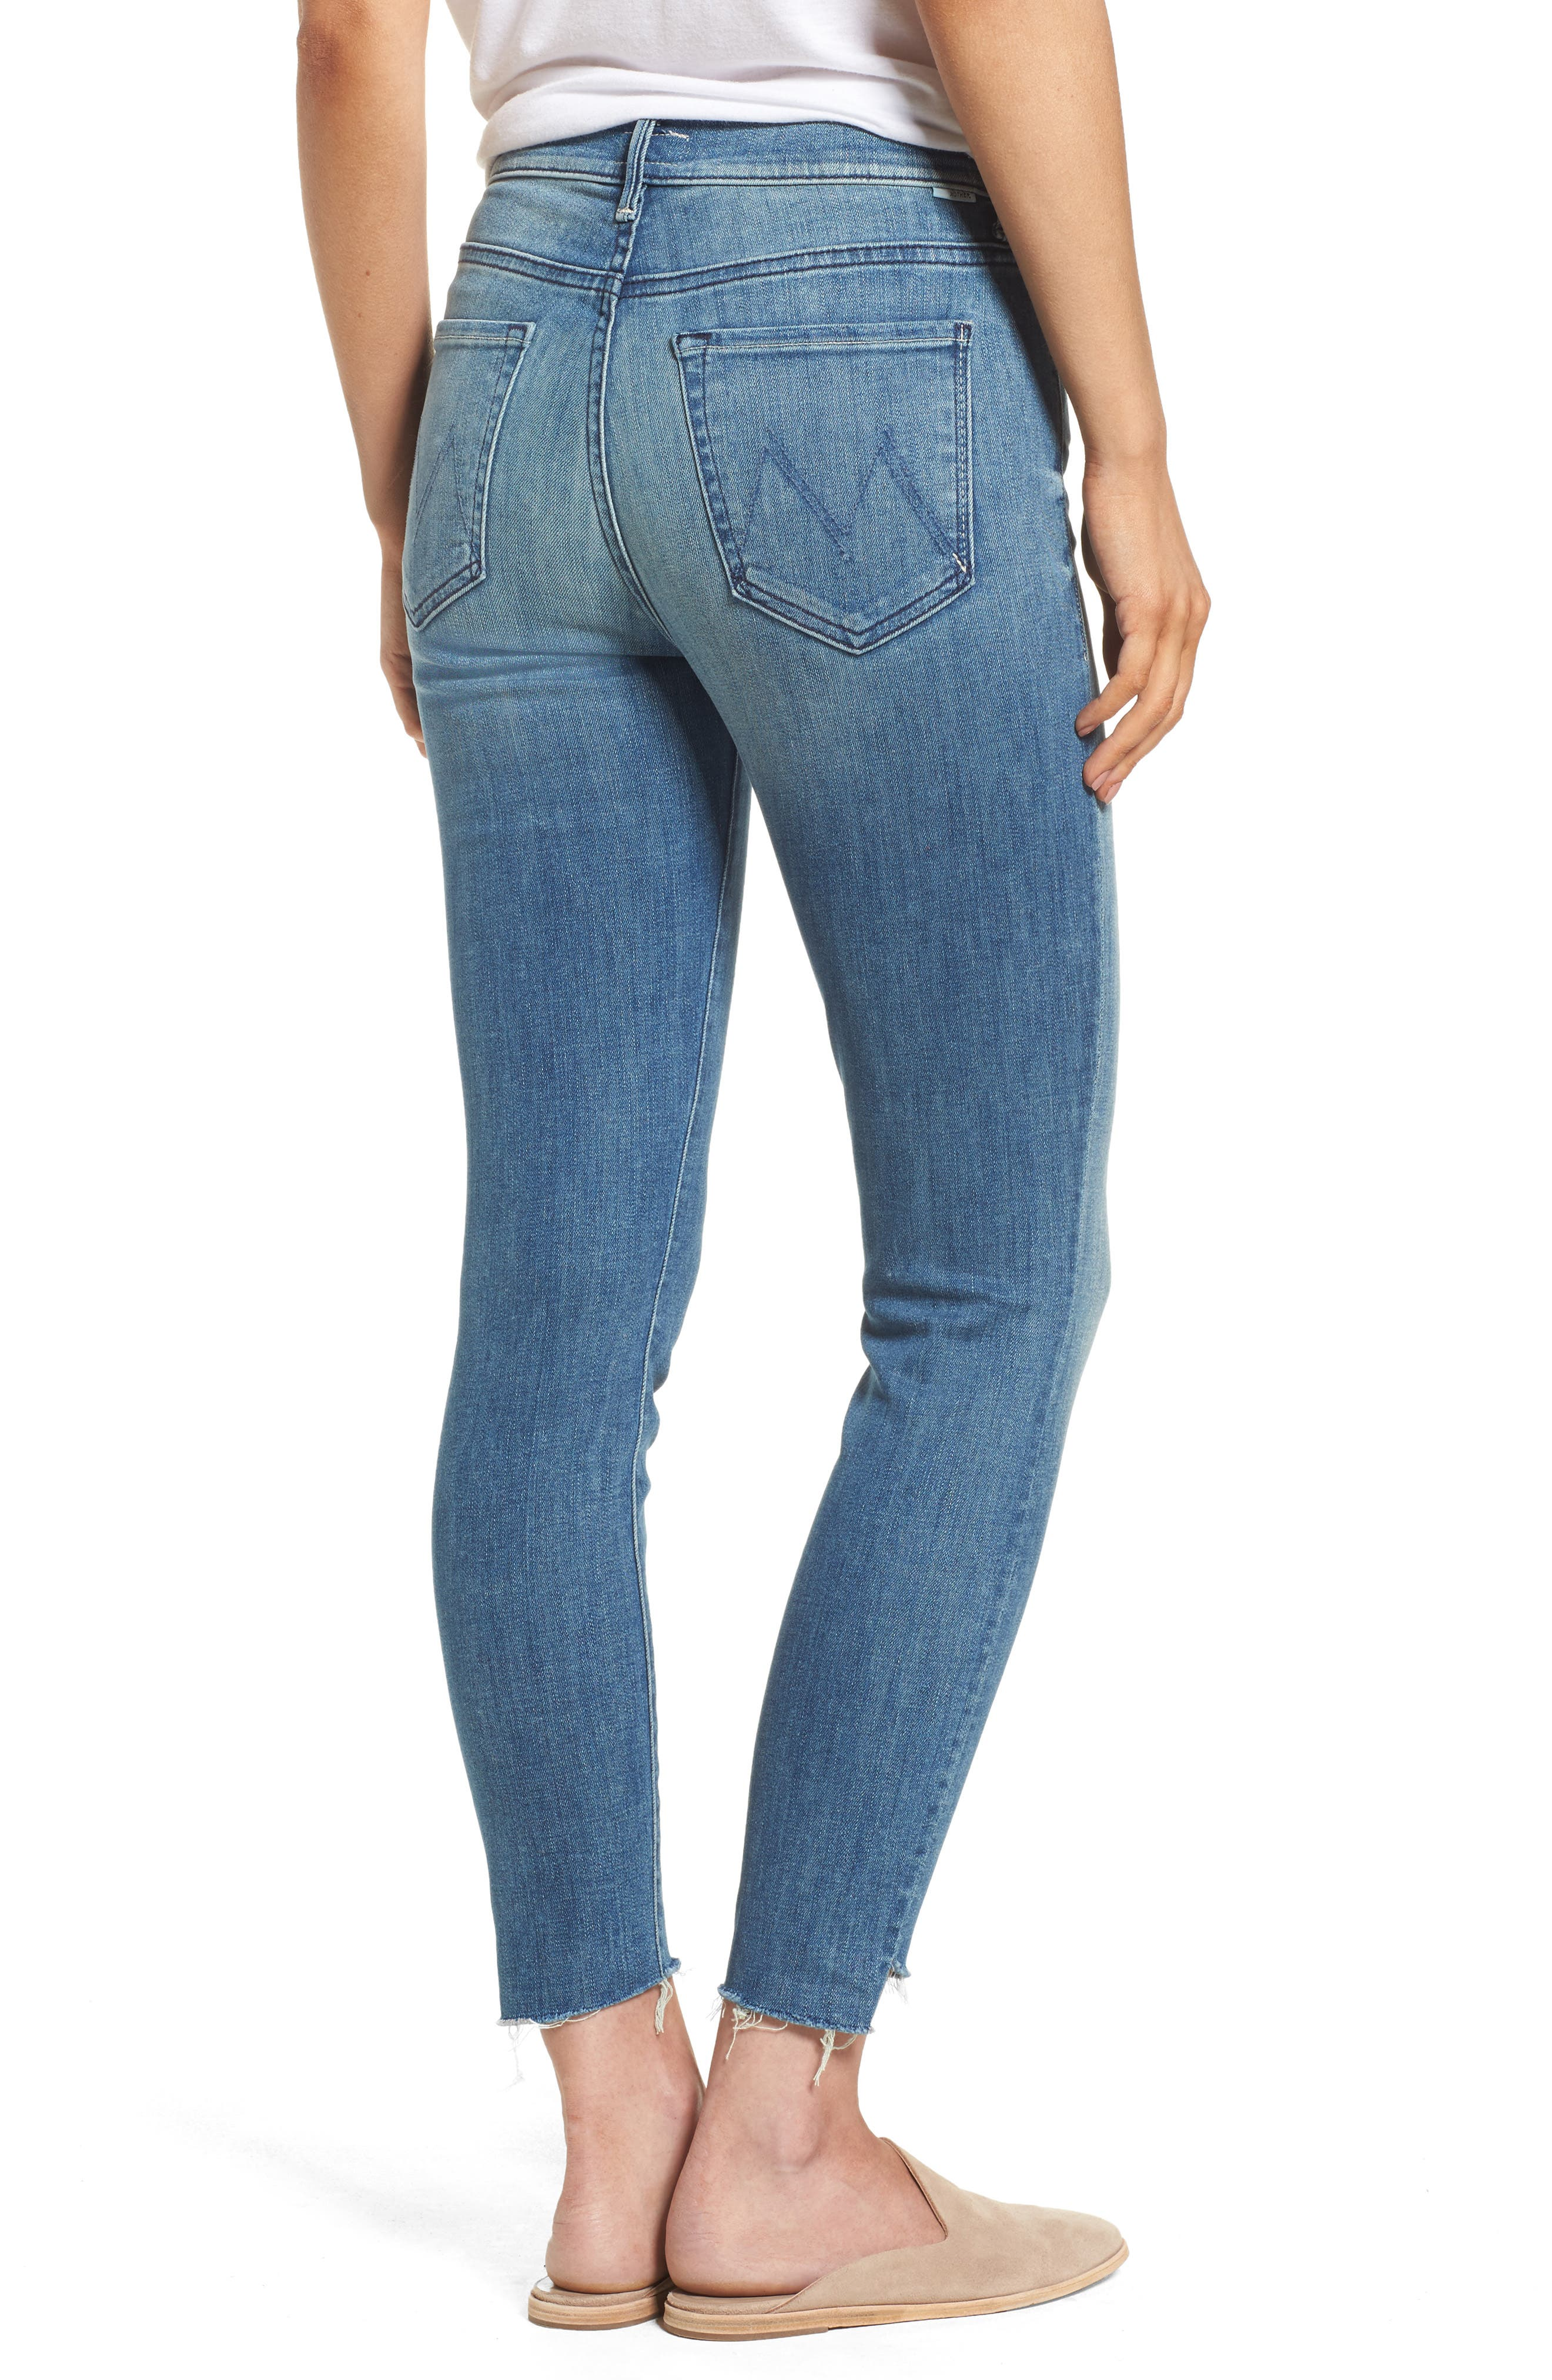 Alternate Image 2  - MOTHER The Stunner High Rise Ankle Fray Jeans (Good Girls Do)